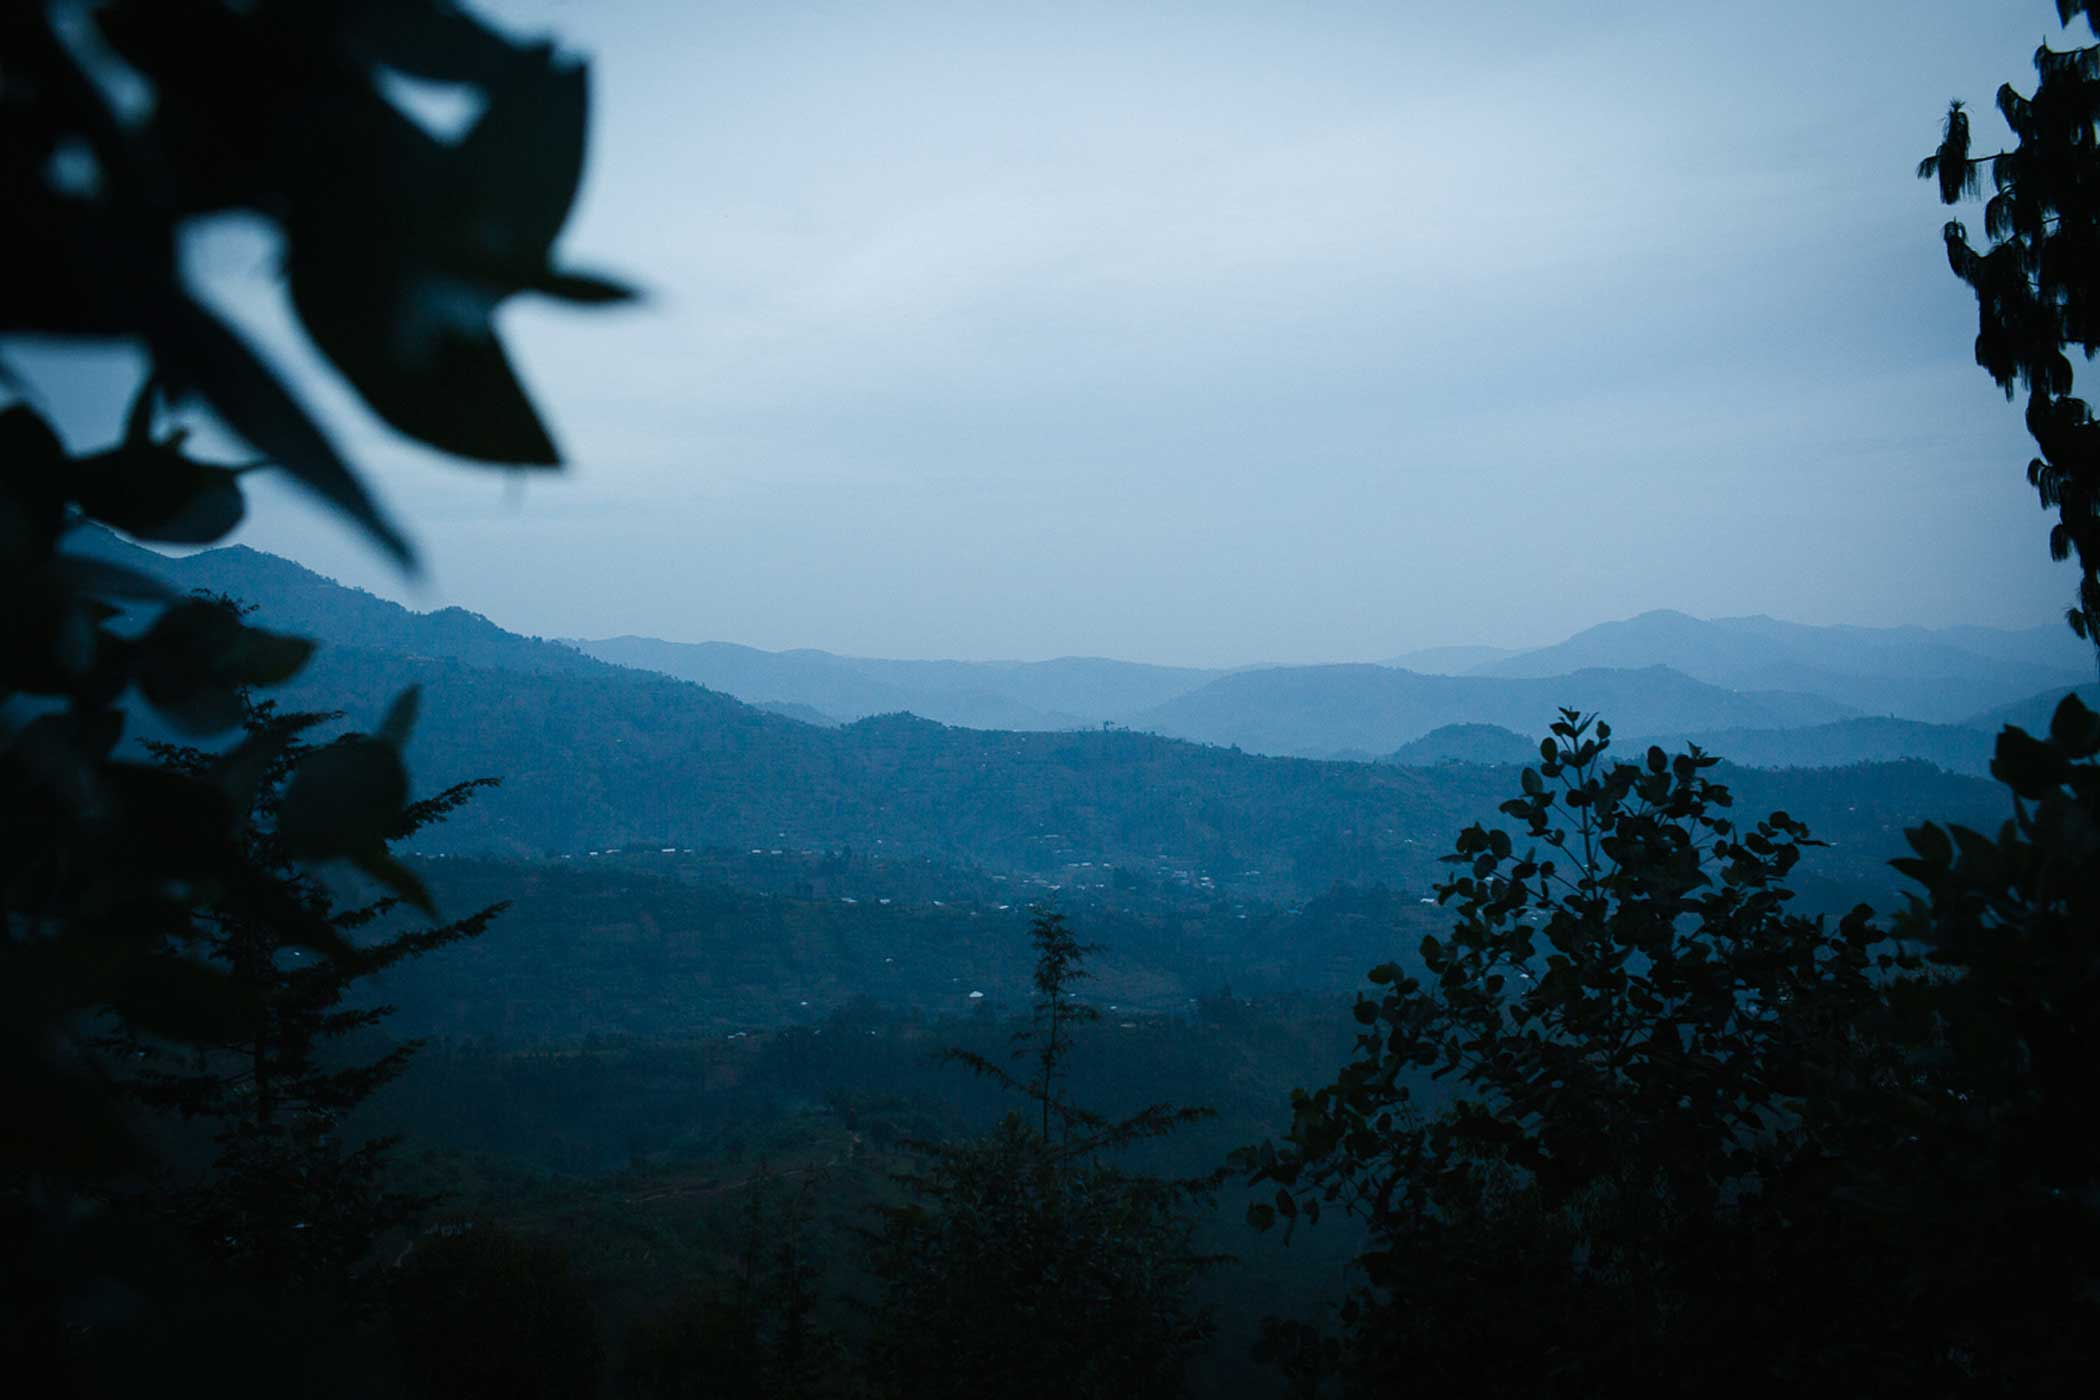 The land of a thousand hills. Rwanda is attempting to turn an agrarian society into a knowledge-based economy and instilling a sense of national identity and unity in Rwandans.